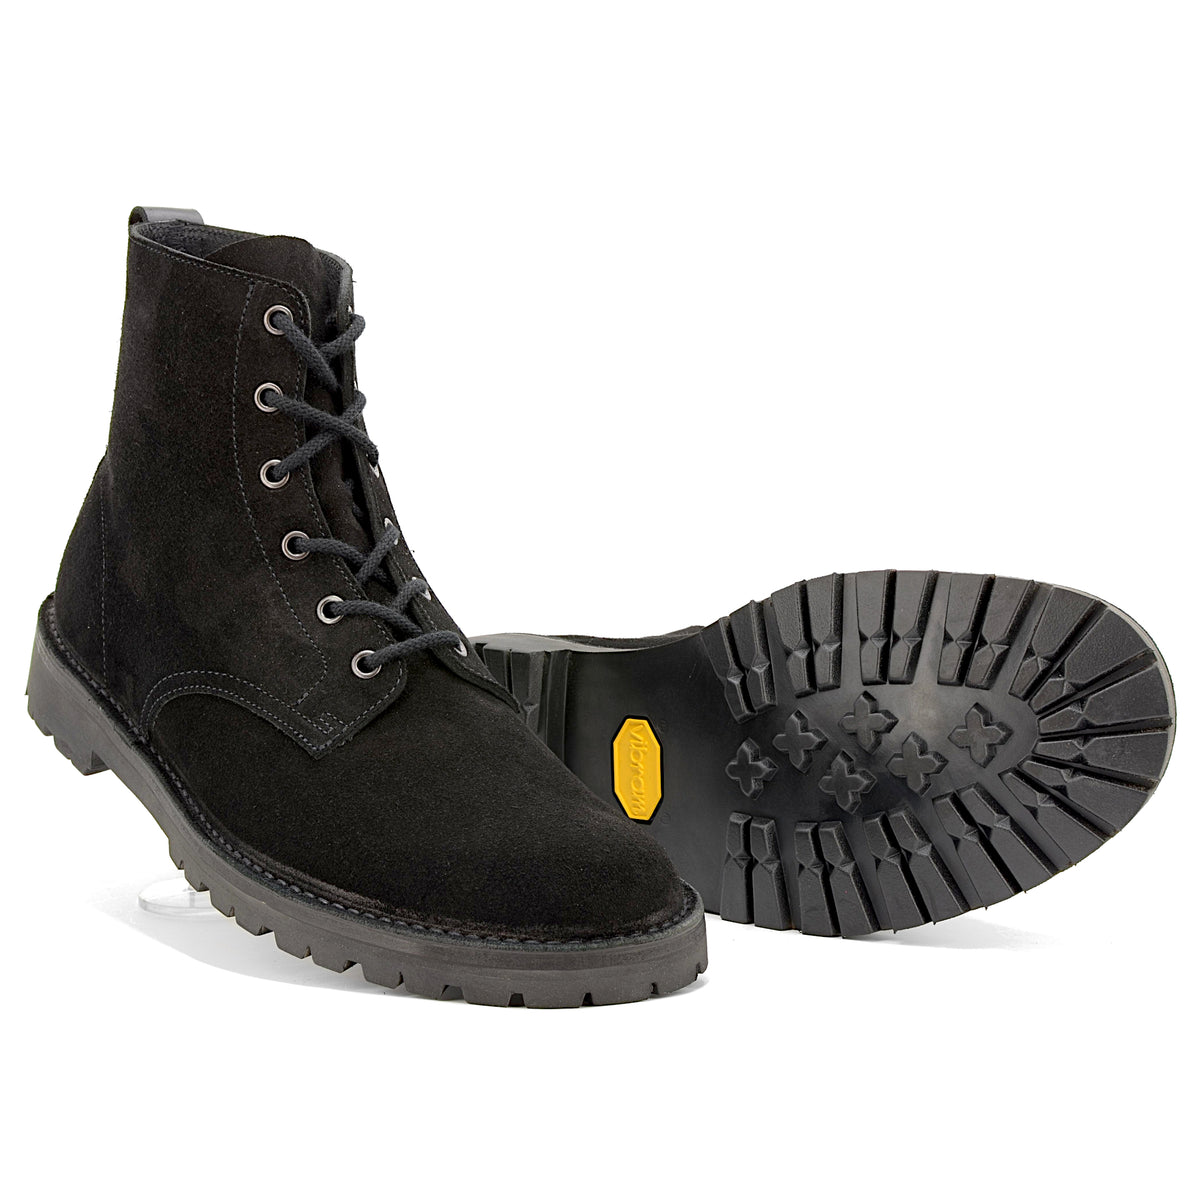 Black Desert Boots Vibram soles - Made in England